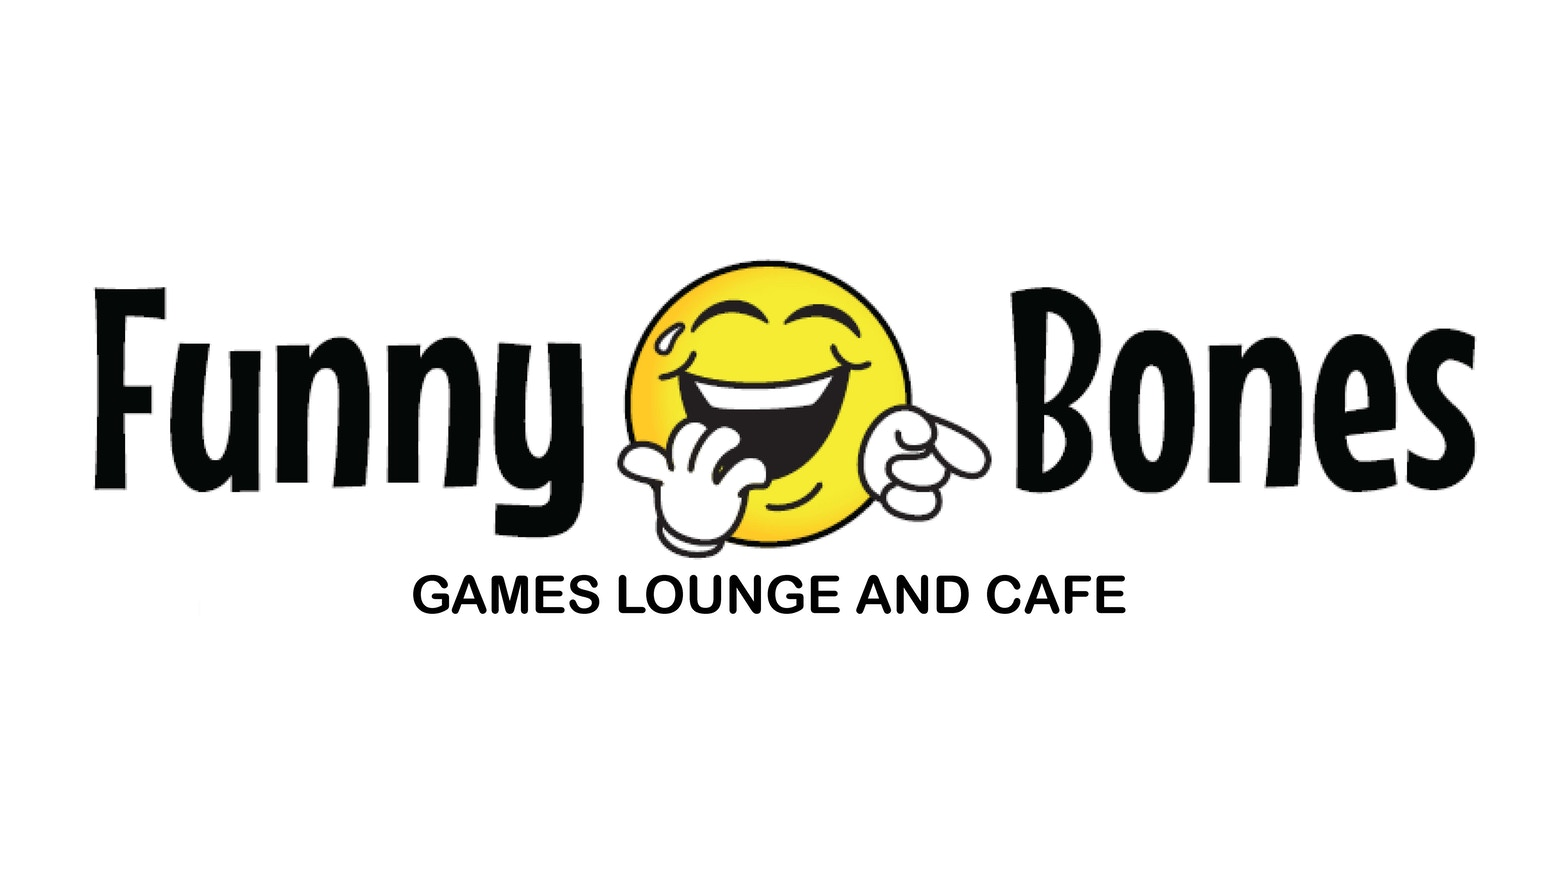 Funny Bones Games Lounge and Cafe by Laurie Bradford